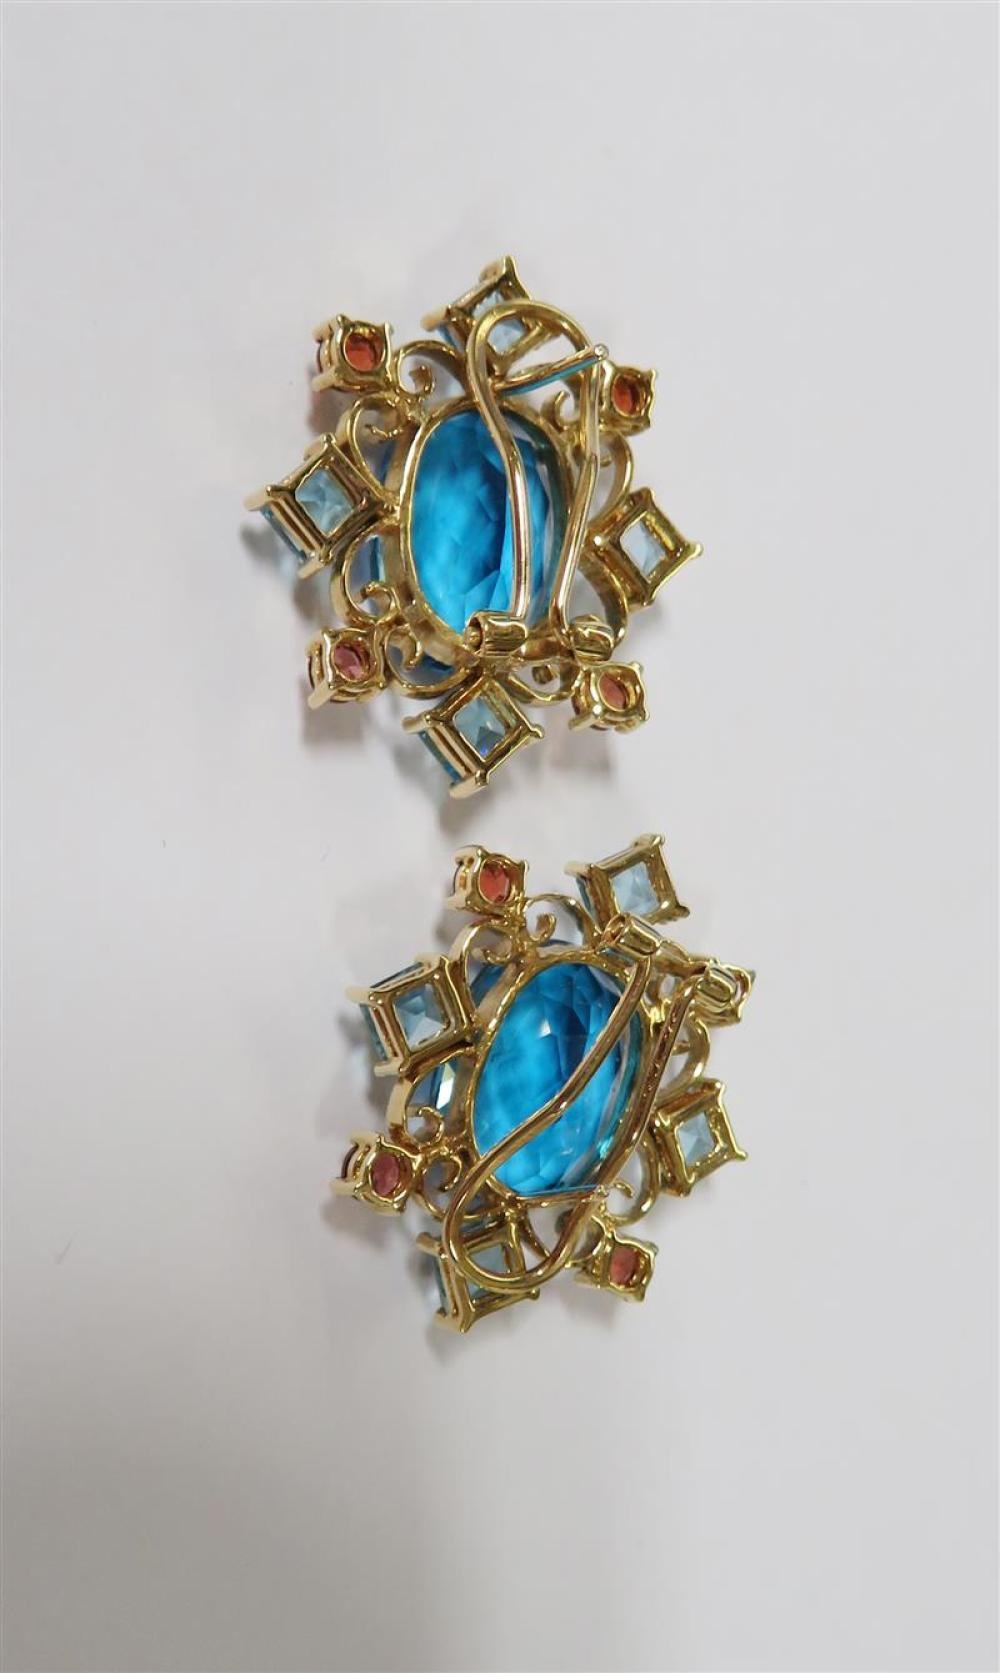 Gemstone, diamond and gold rings and earrings (5pcs)